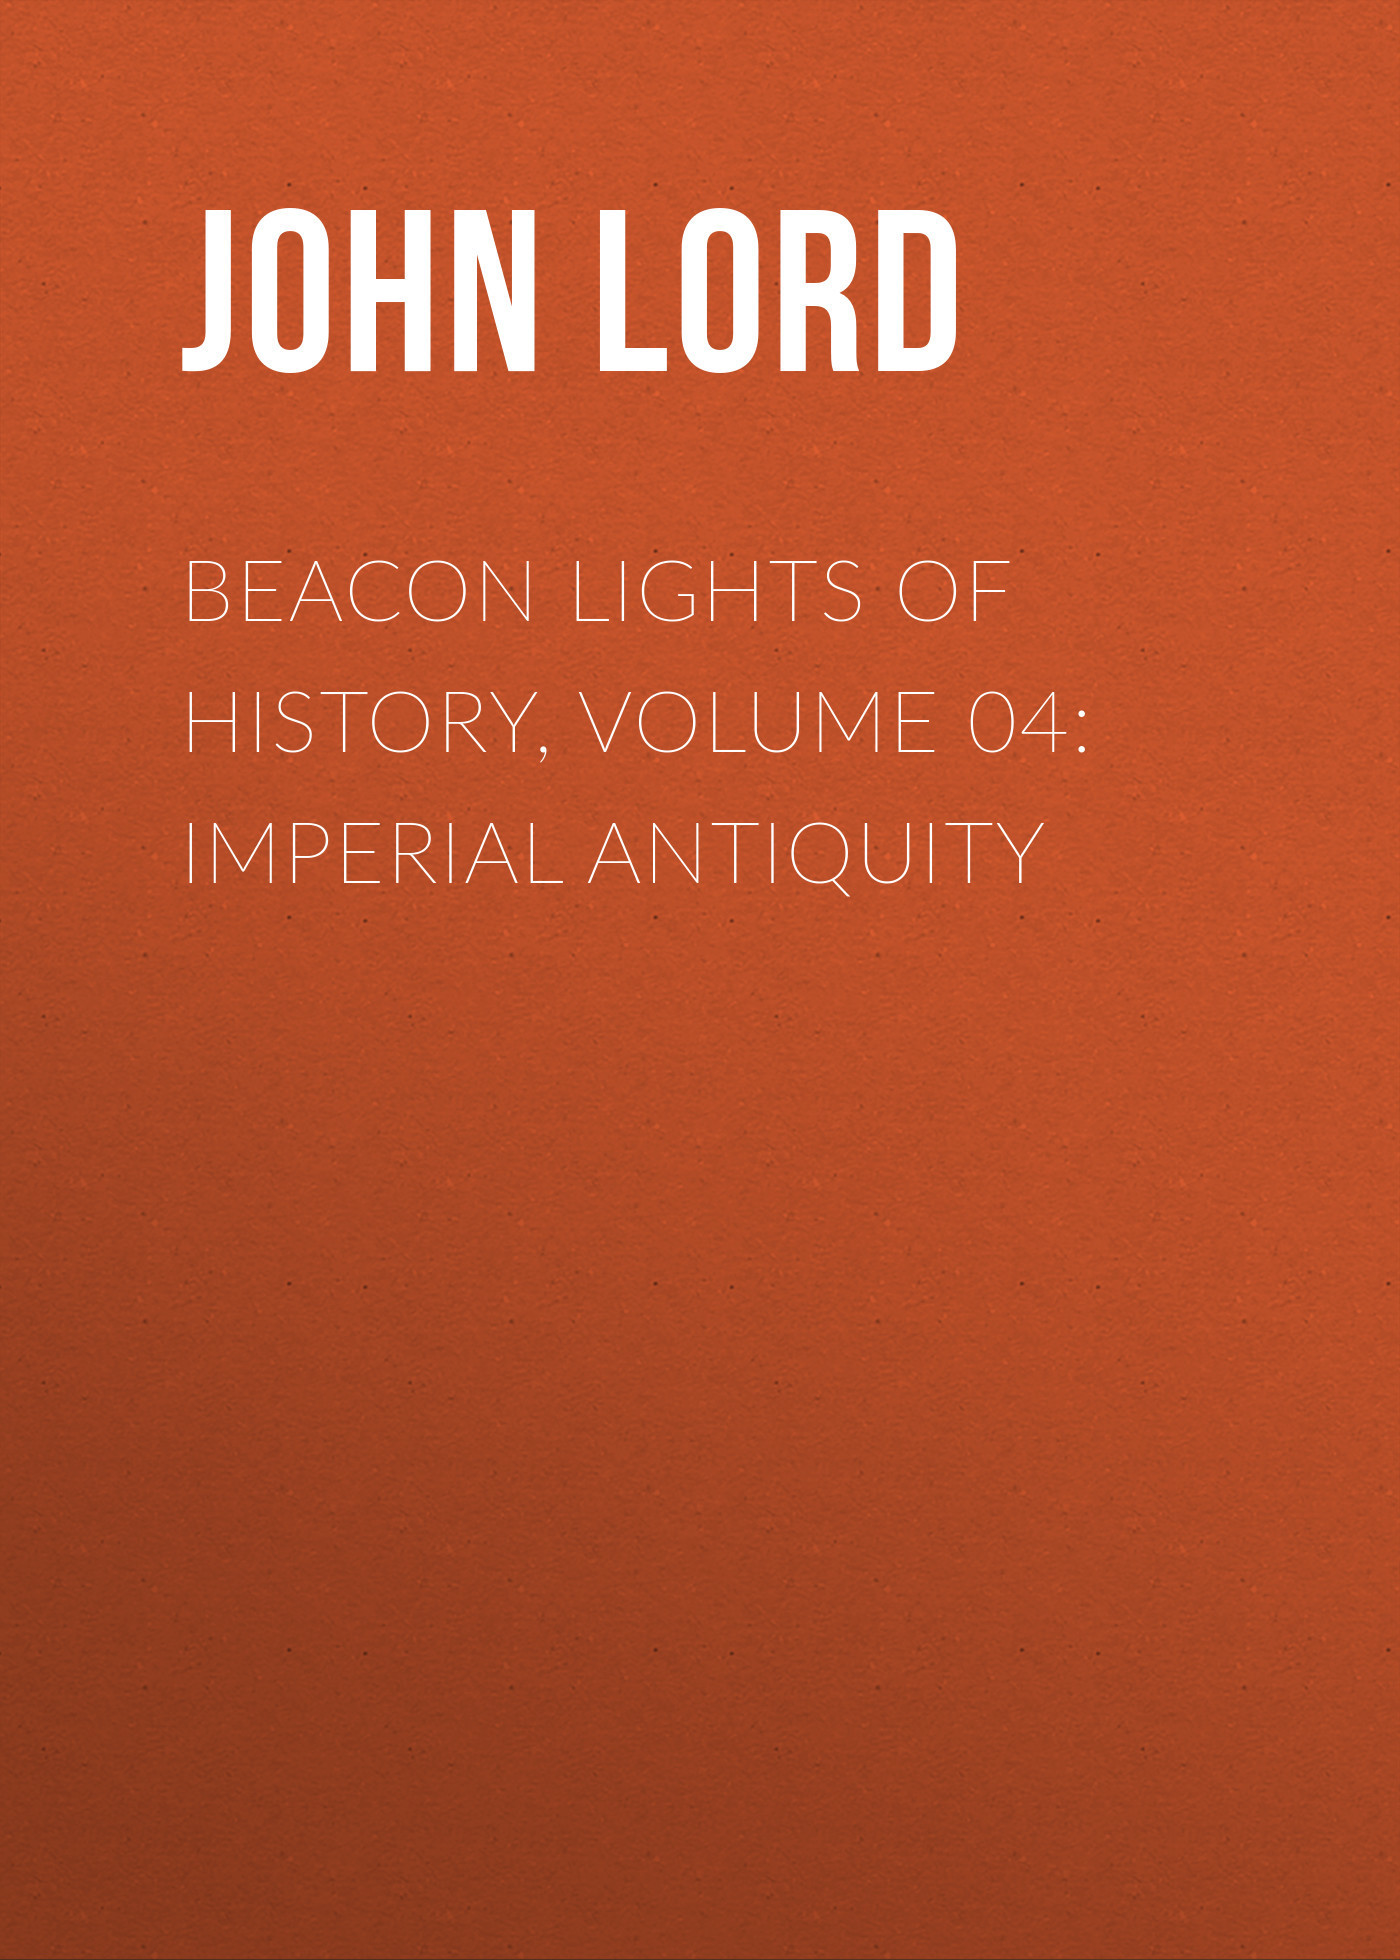 John Lord Beacon Lights of History, Volume 04: Imperial Antiquity